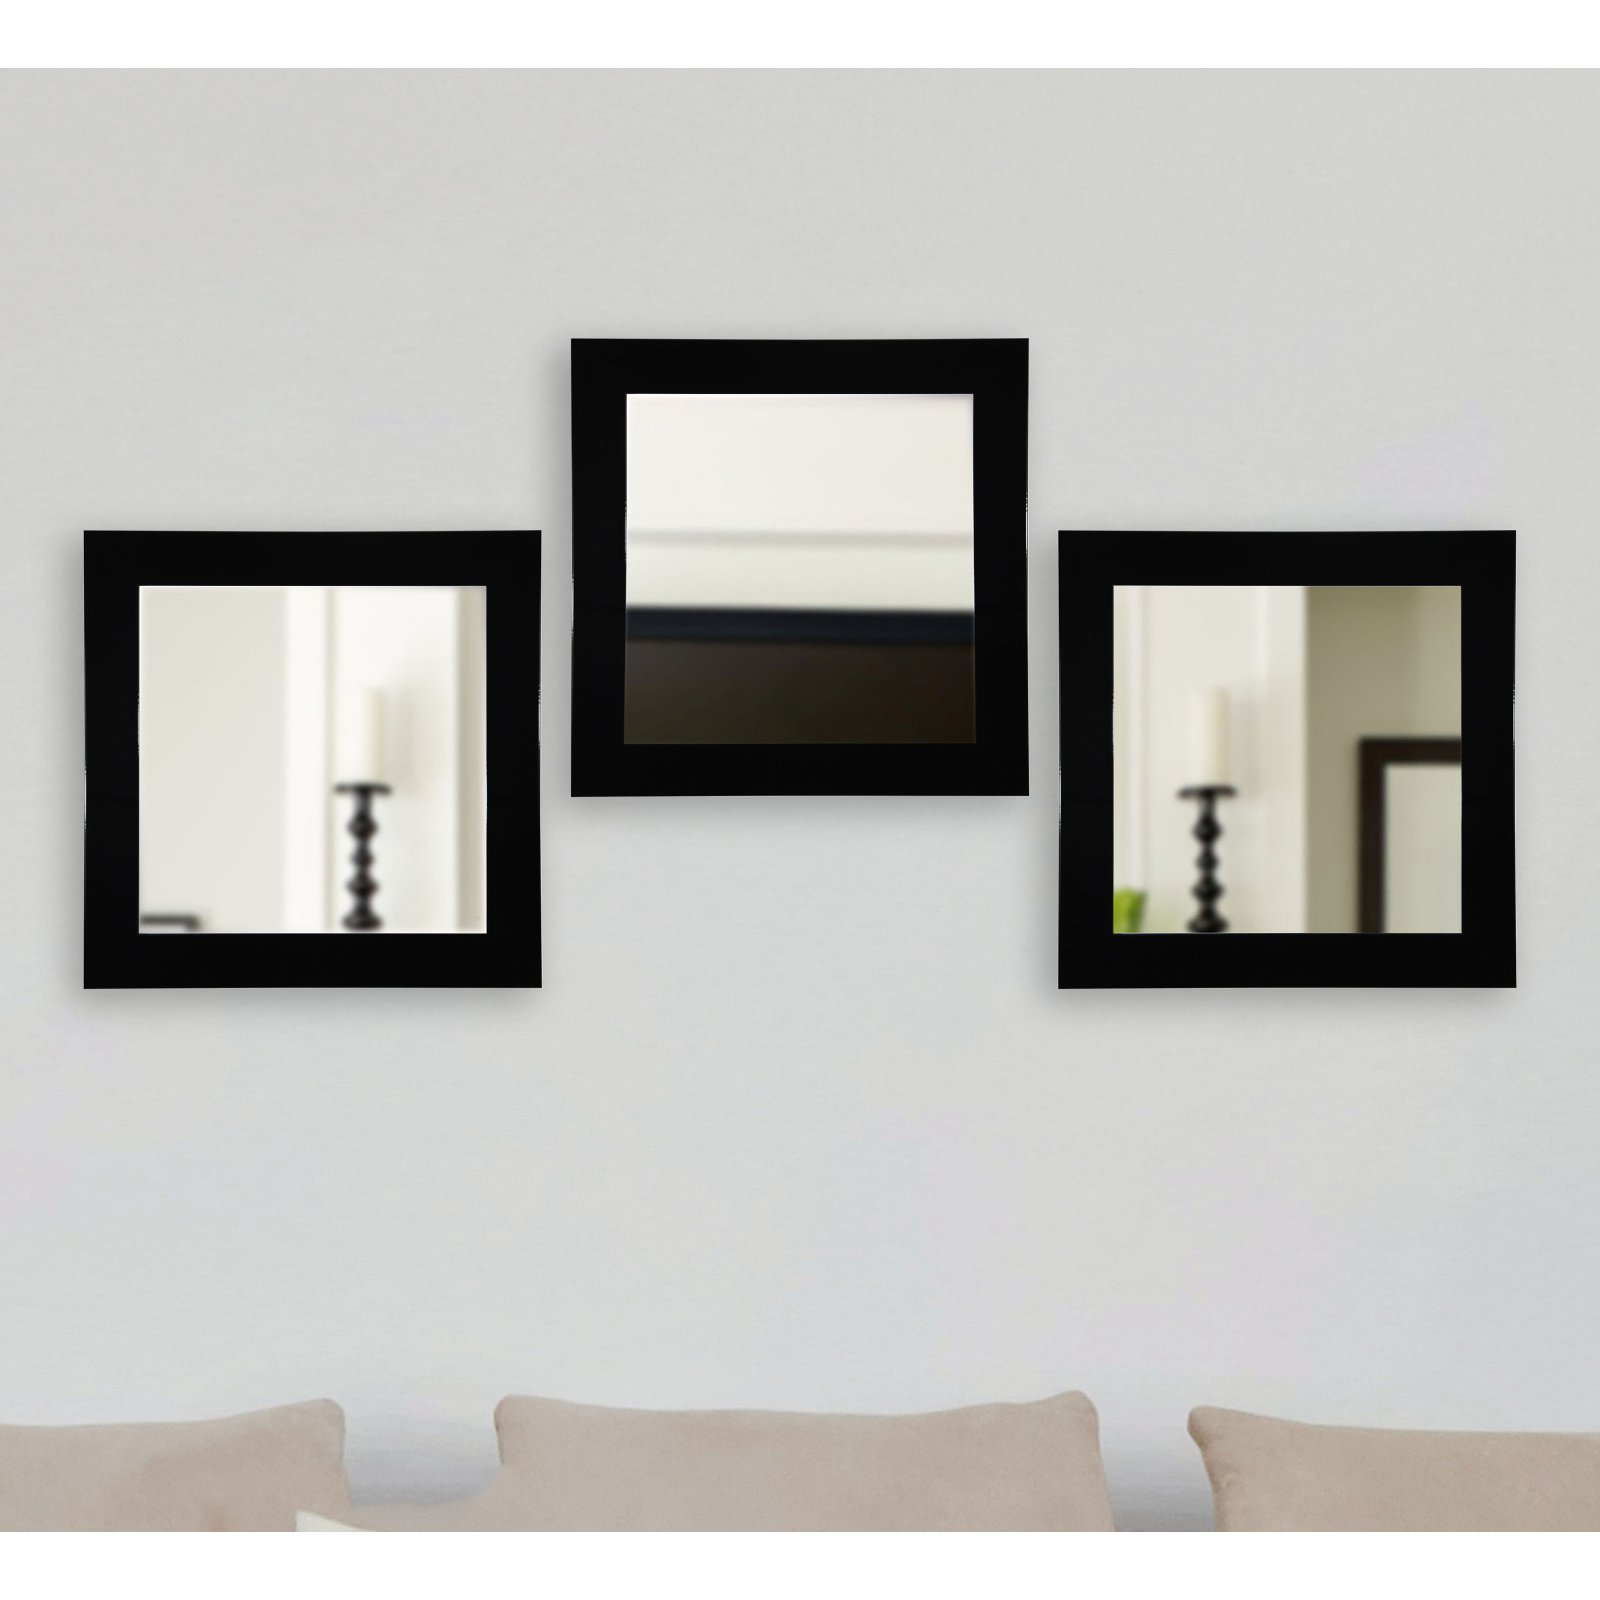 Rayne Mirrors Delta Square Wall Mirror - Set of 3